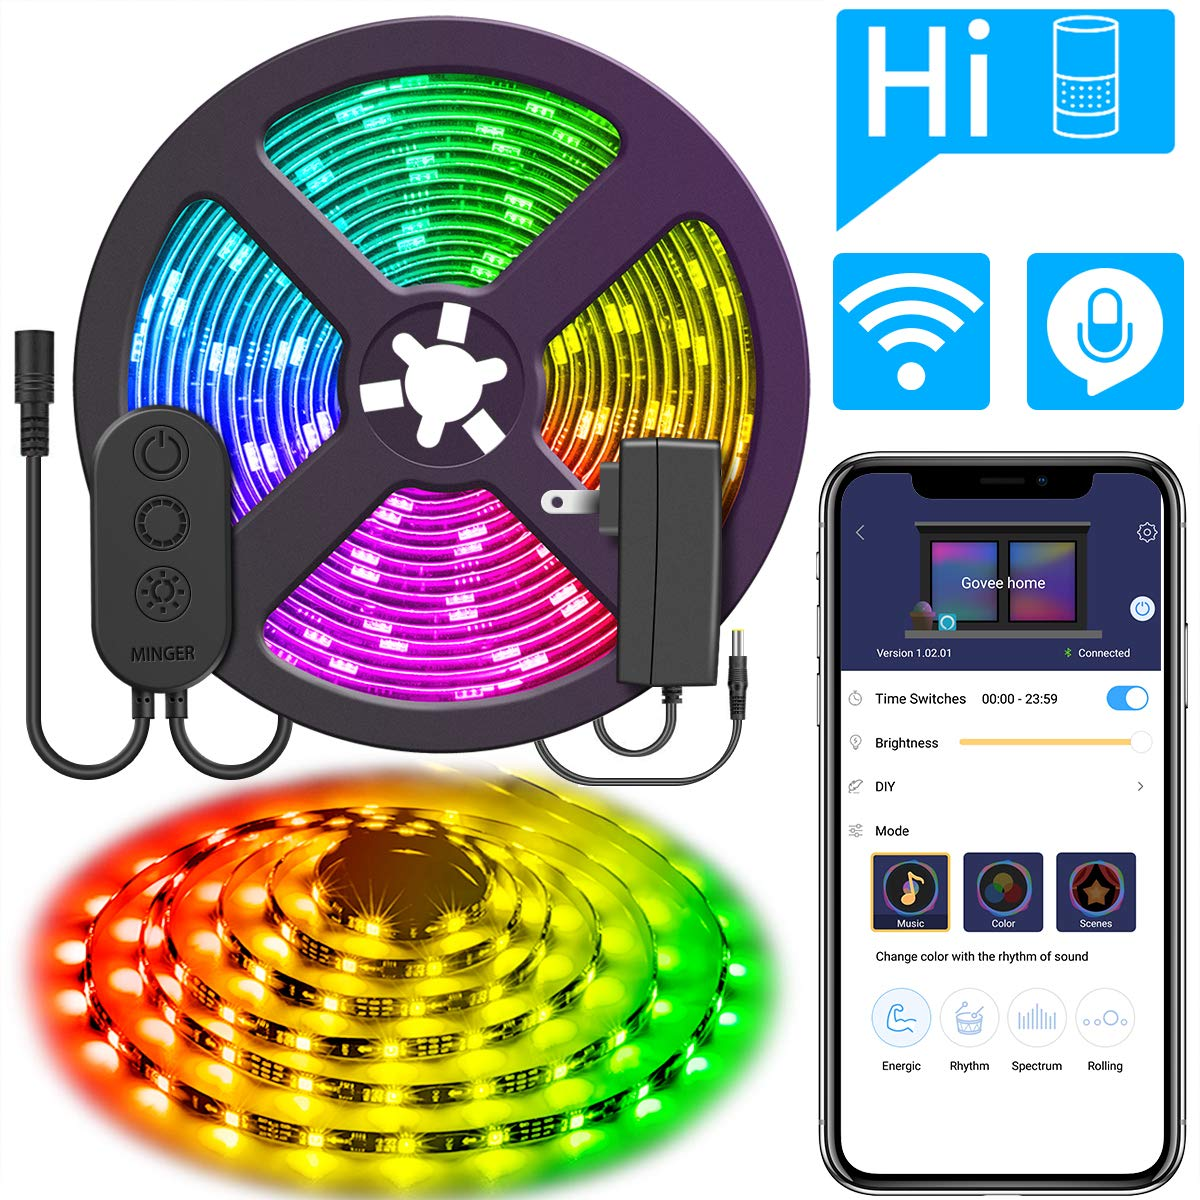 DreamColor 16.4ft LED Strip Lights, Govee WiFi Wireless Smart Phone Controlled Light Strip 5050 LED Lights Sync to Music, Work with Amazon Alexa, Google Assistant Android iOS (Not Support 5G WiFi)